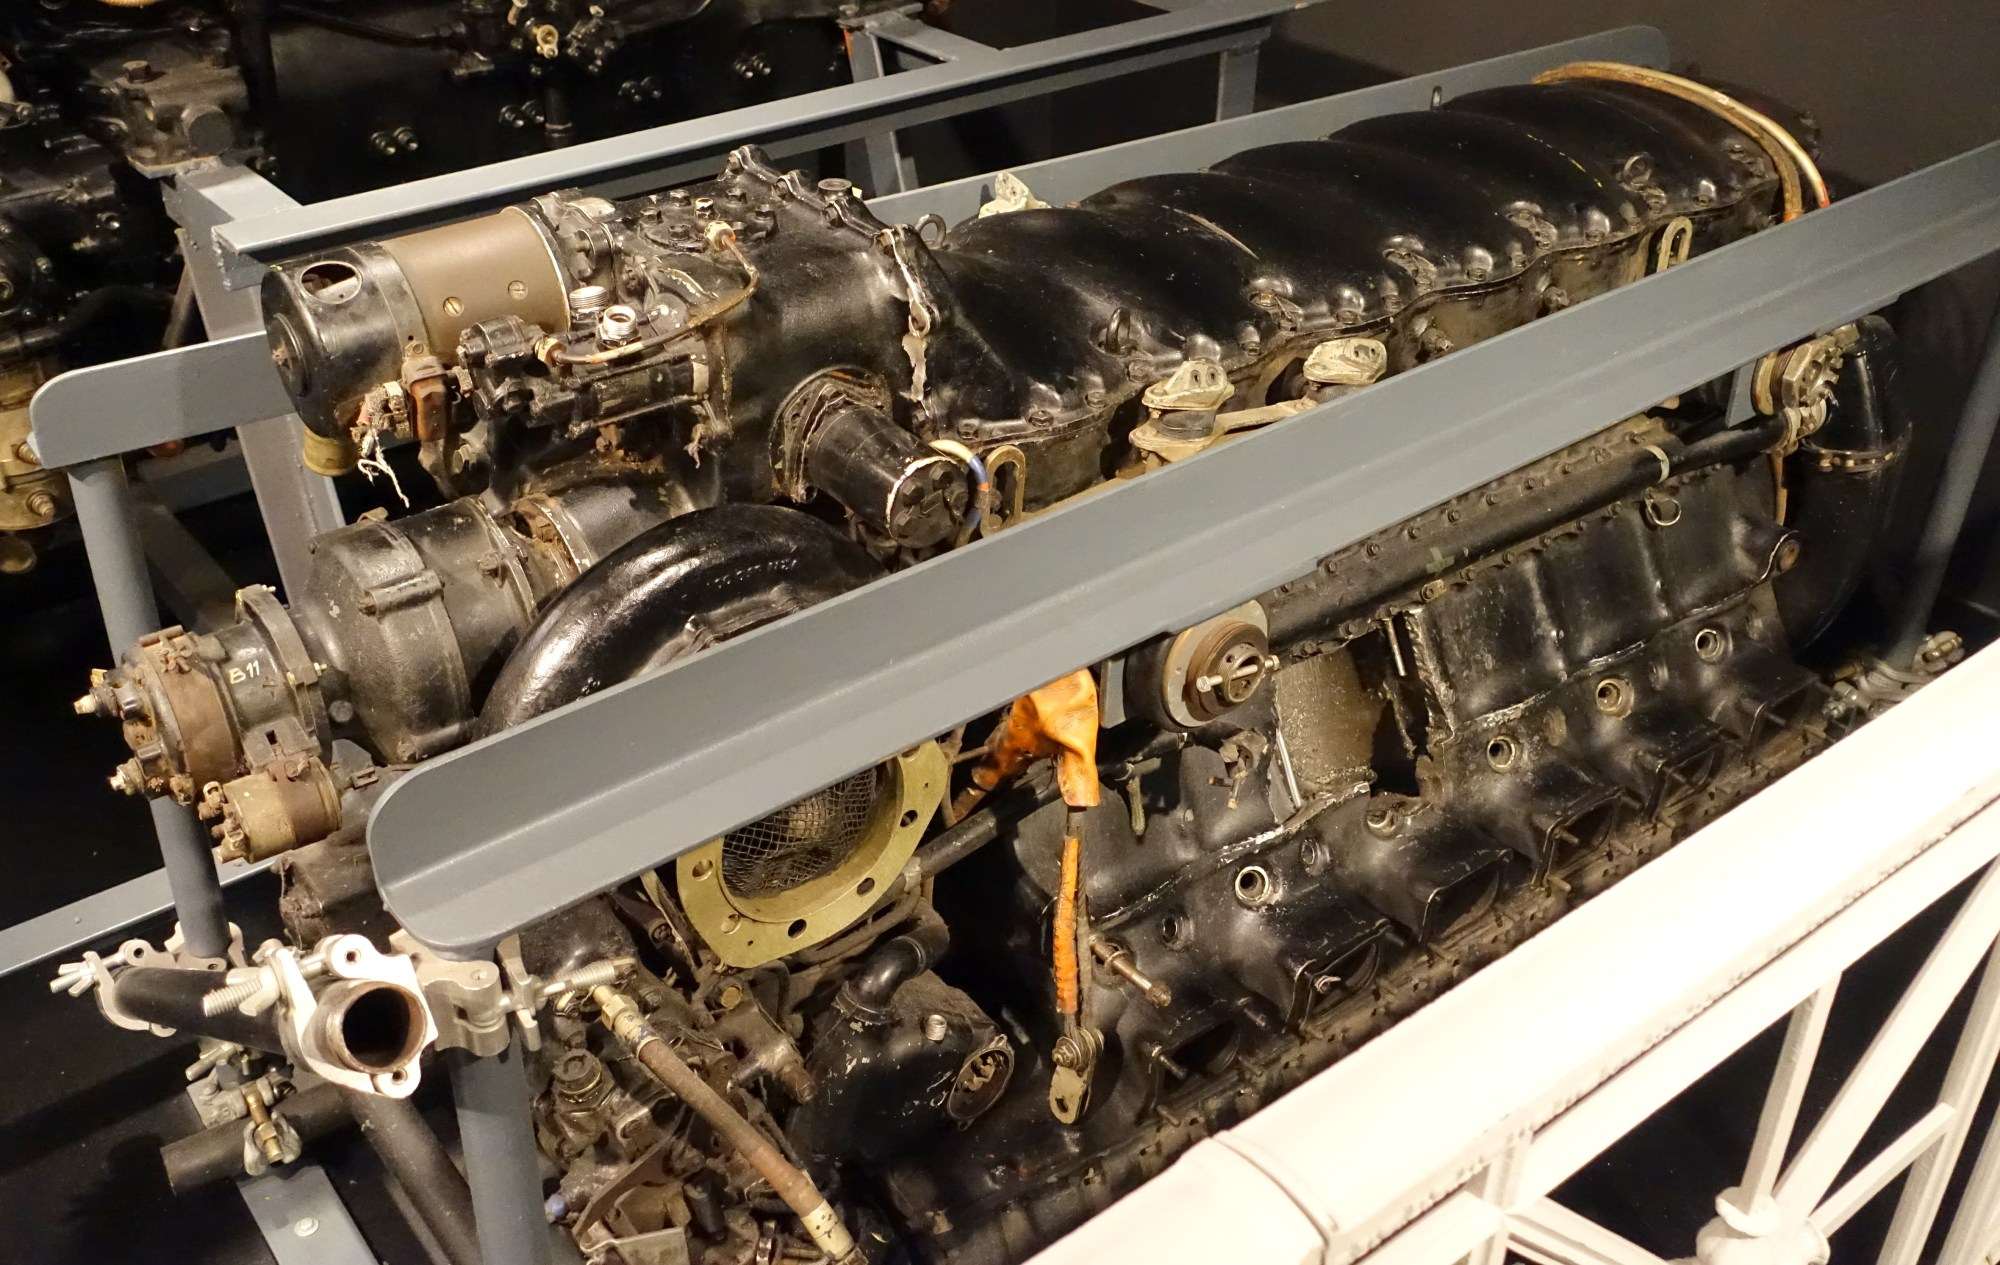 hight resolution of file junkers ju 87r 2 tropical stuka engine c 1940